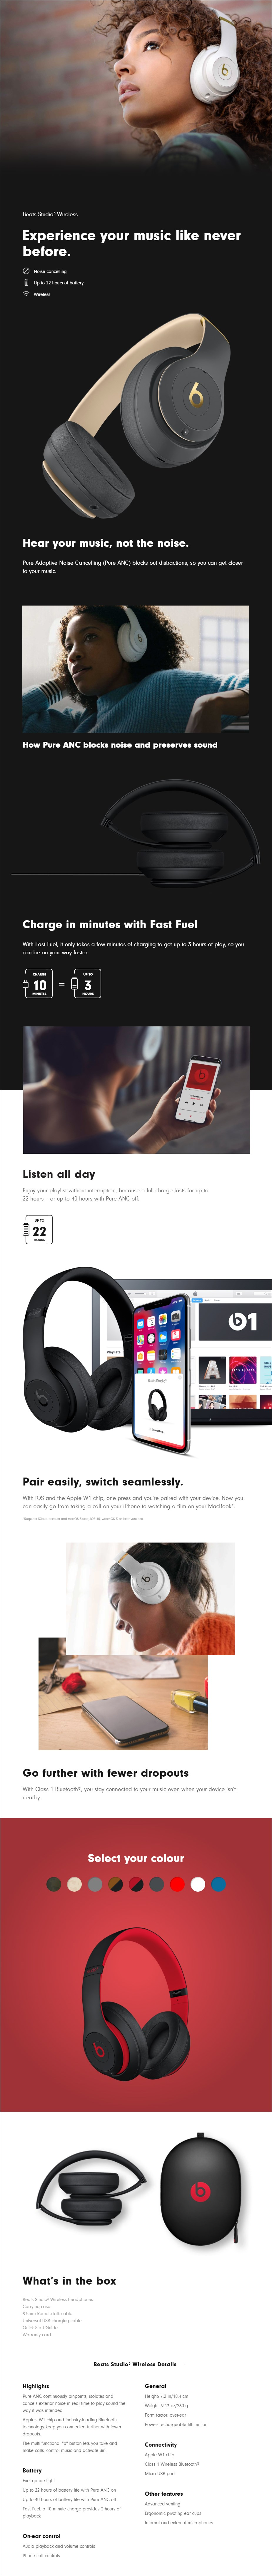 Beats Studio3 Wireless Over-Ear Headphones - Overview 1